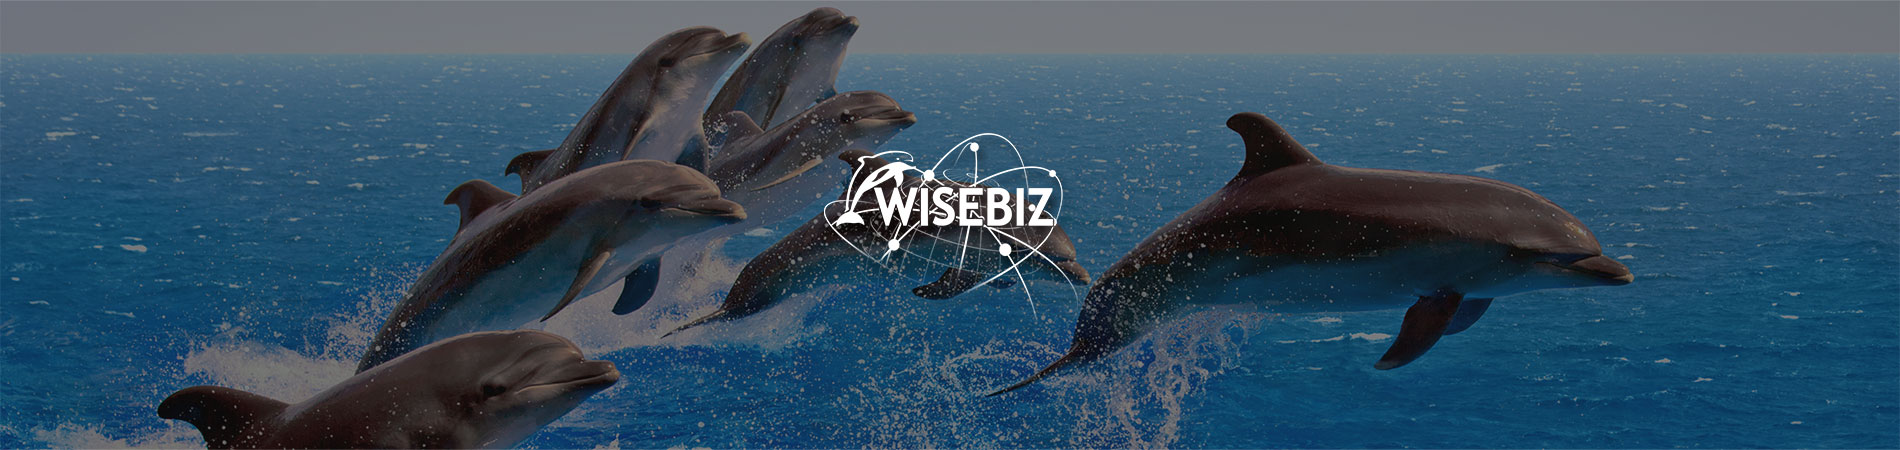 Approach_WiseBiz_Header_1900